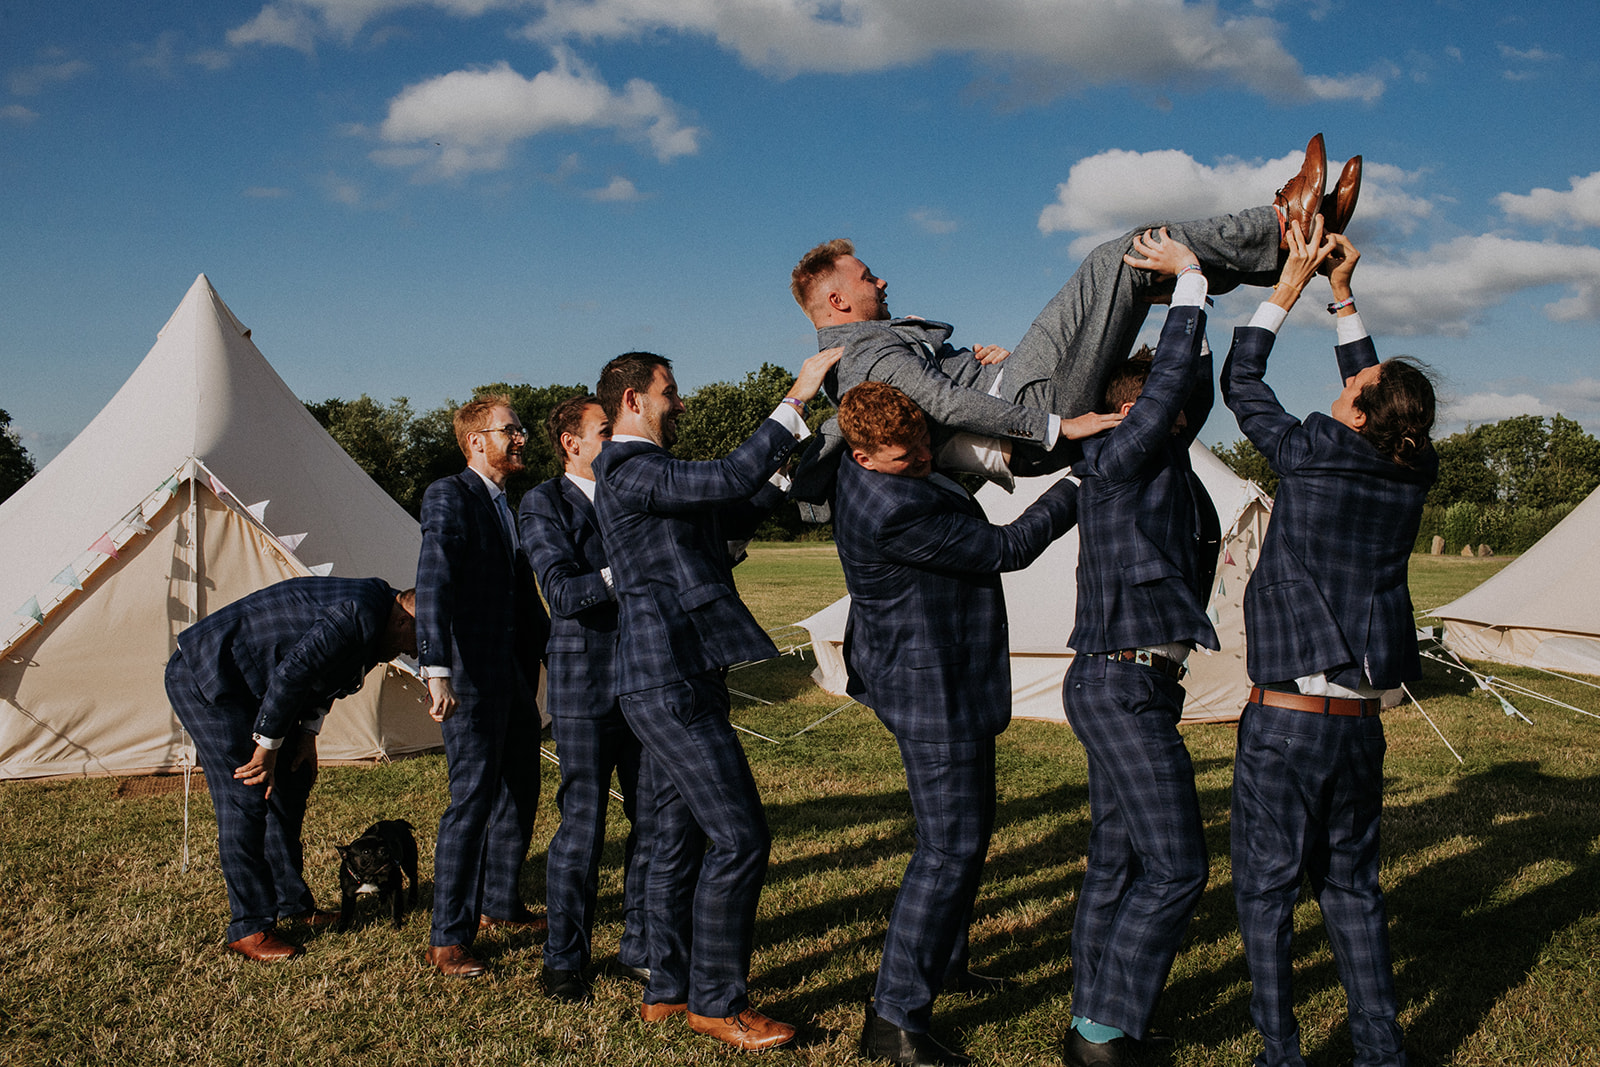 groom being carried by groomsmen - cattows farm wedding with sami tipi